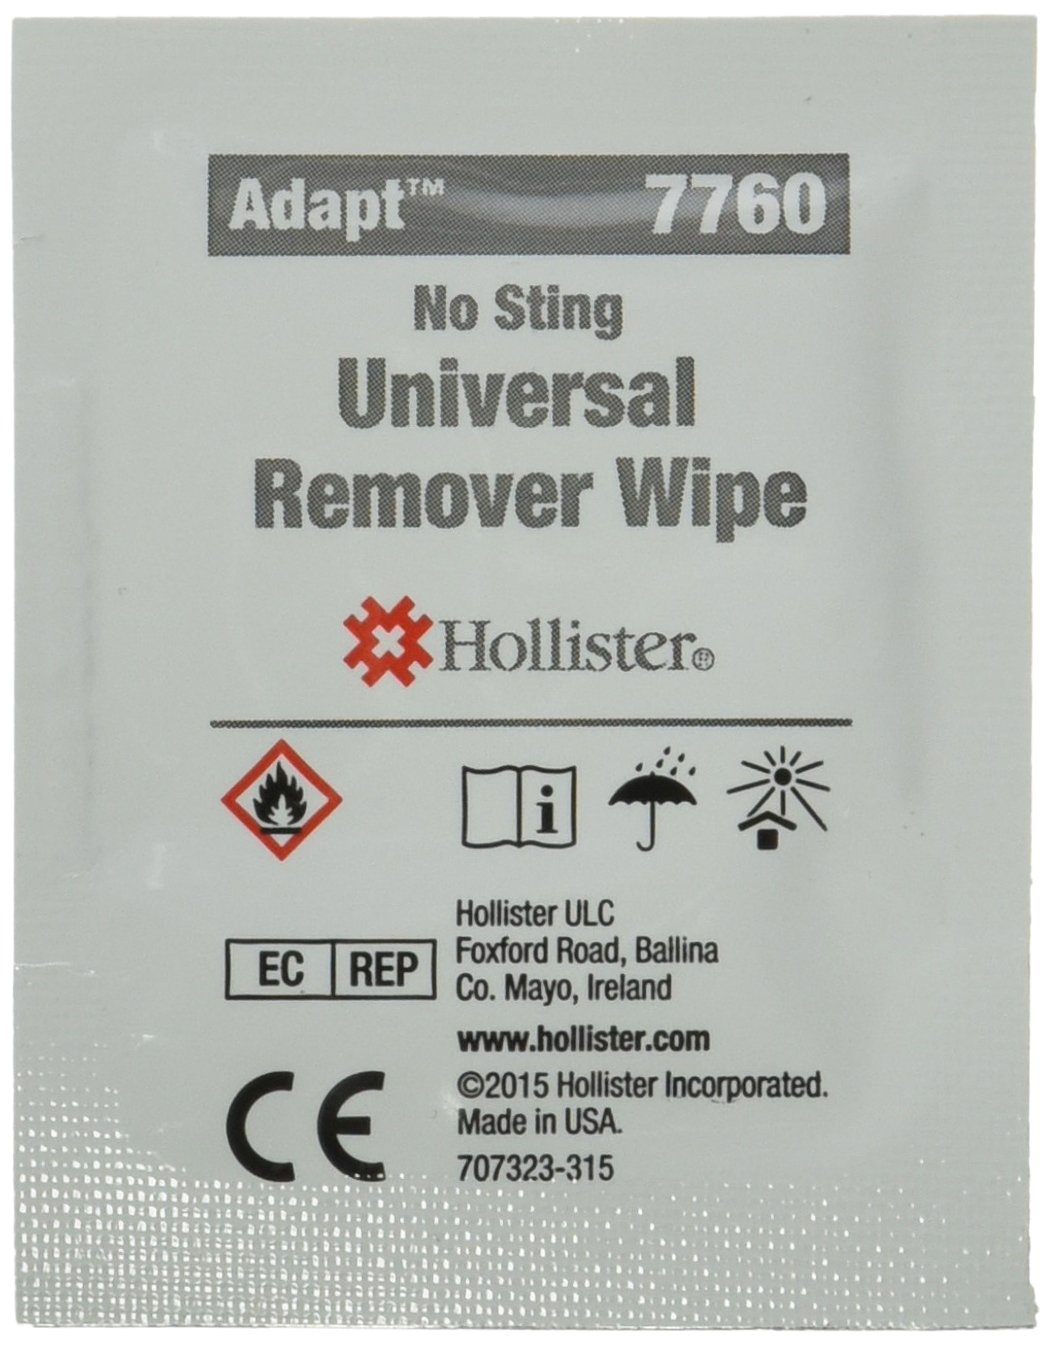 Hollister Adhesive Barrier Remover Category